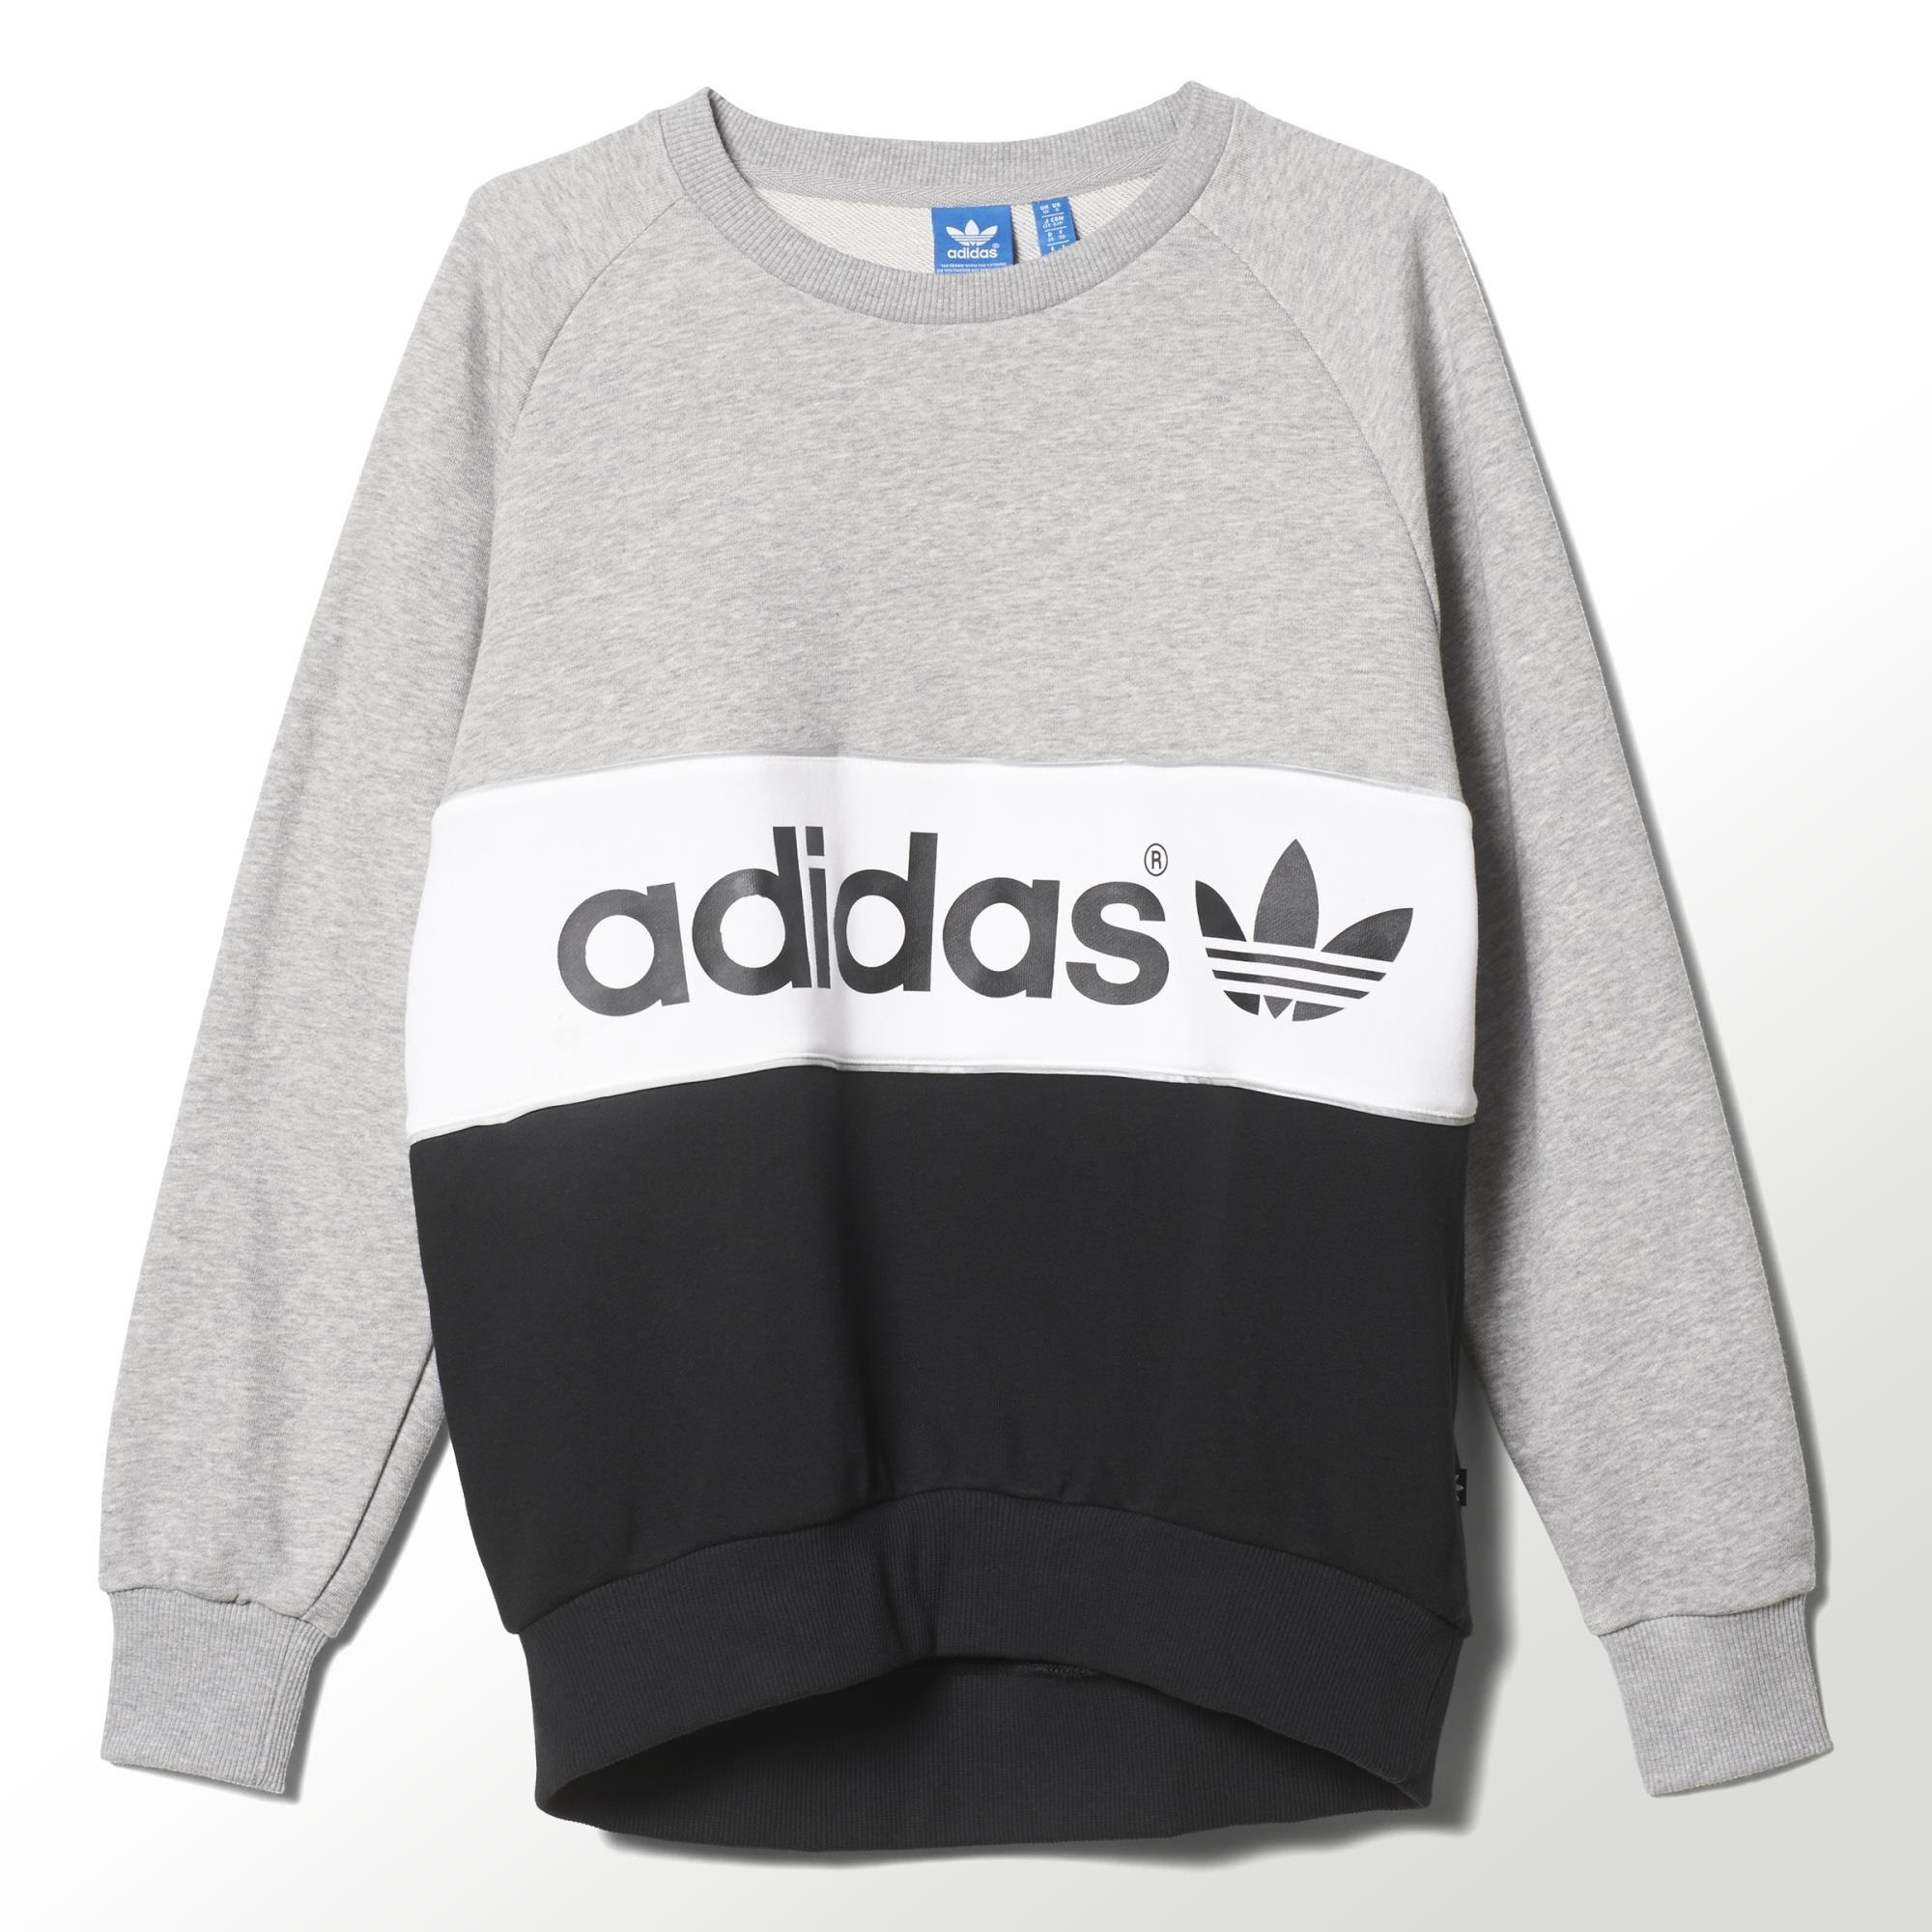 adidas city tokyo sweatshirt adidas us. Black Bedroom Furniture Sets. Home Design Ideas